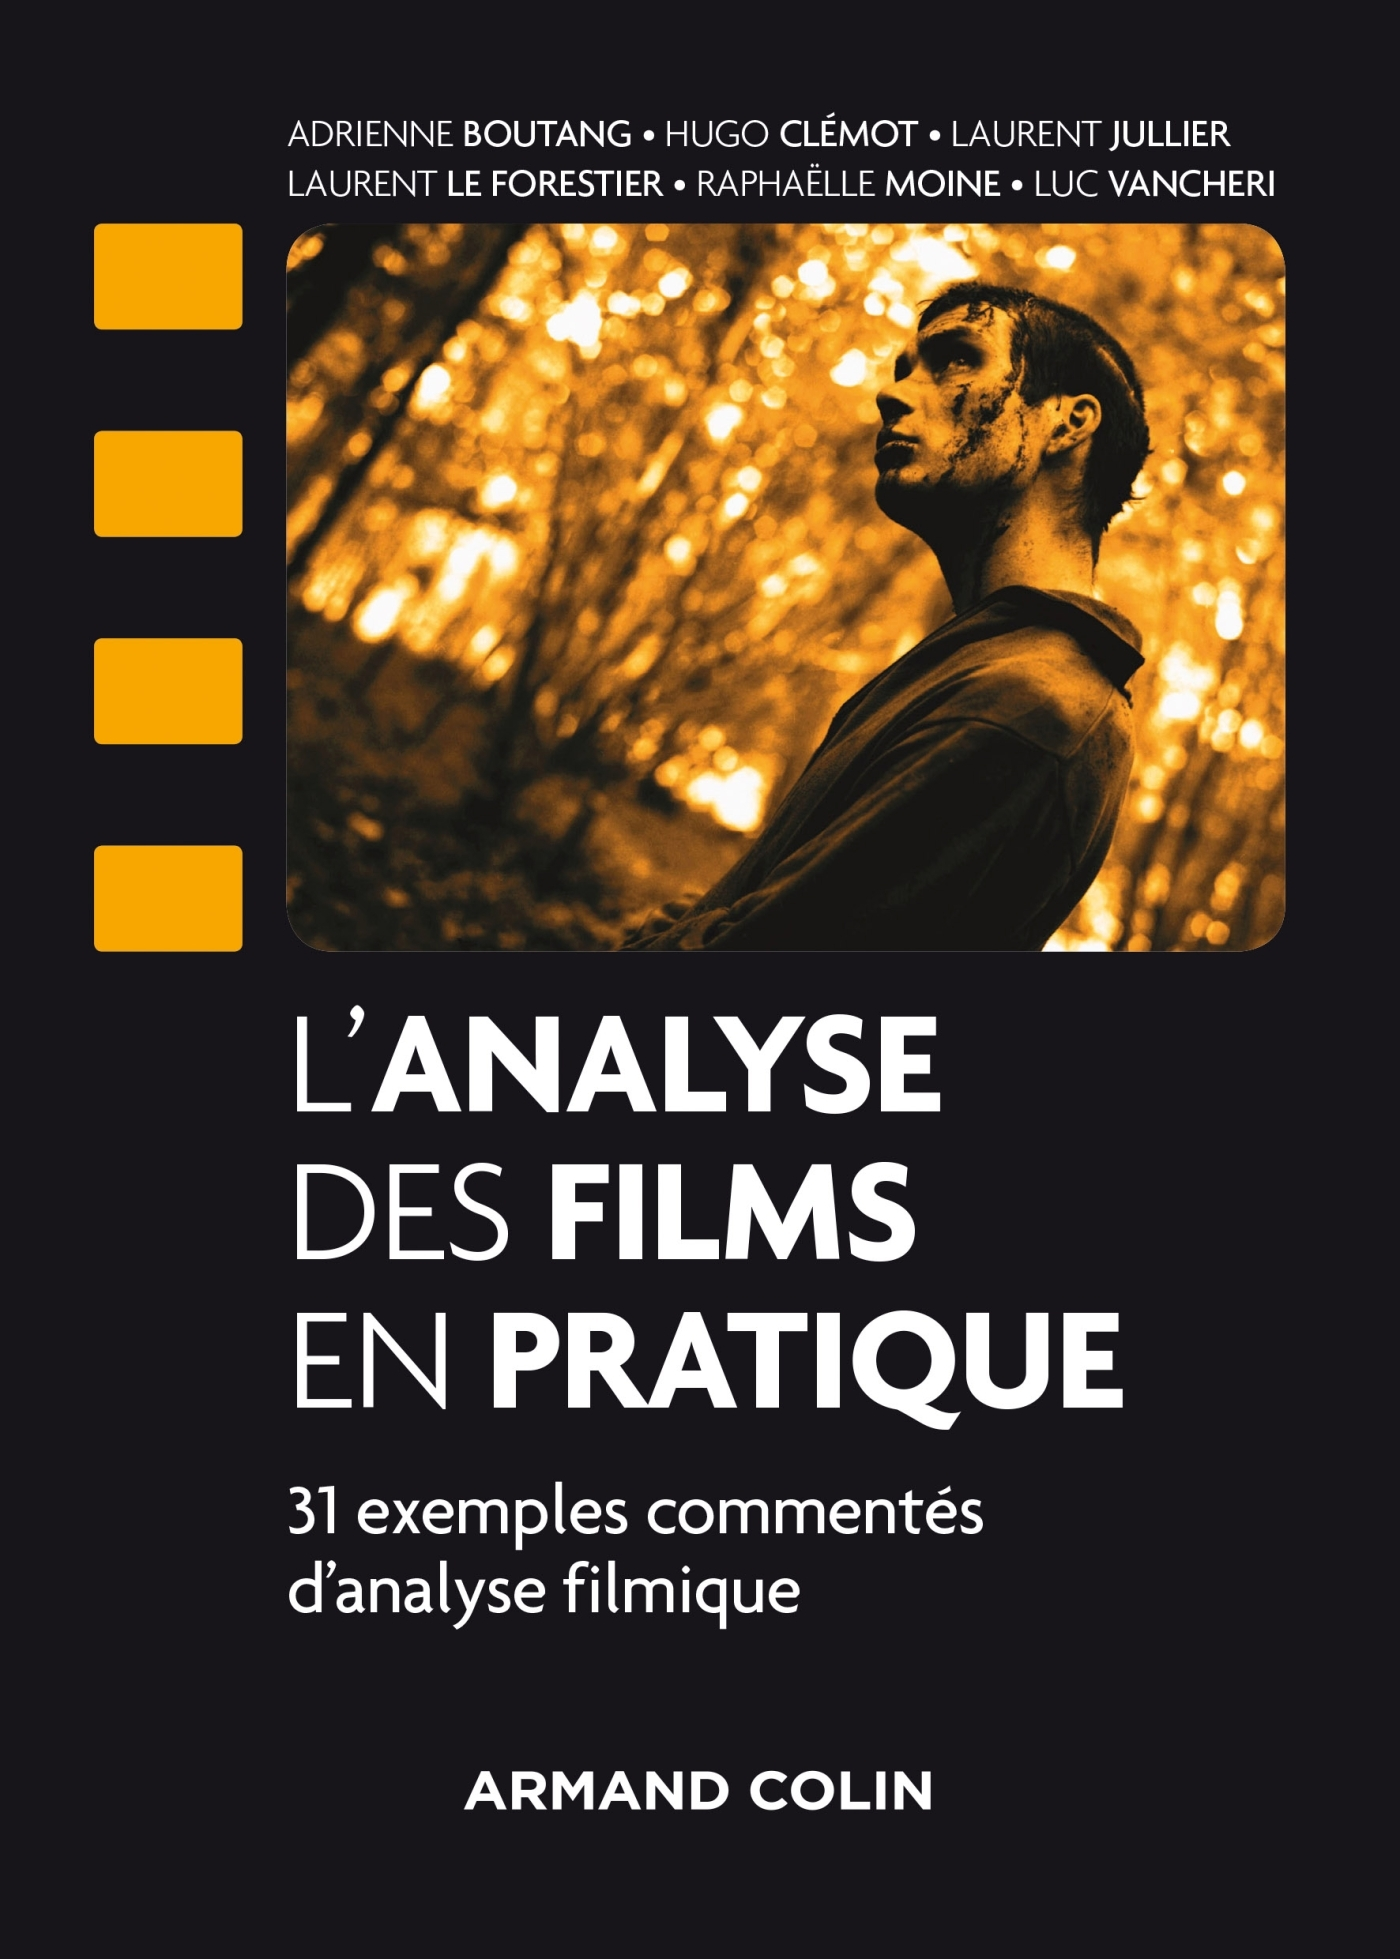 L'ANALYSE DES FILMS EN PRATIQUE - 31 EXEMPLES COMMENTES D'ANALYSE FILMIQUE